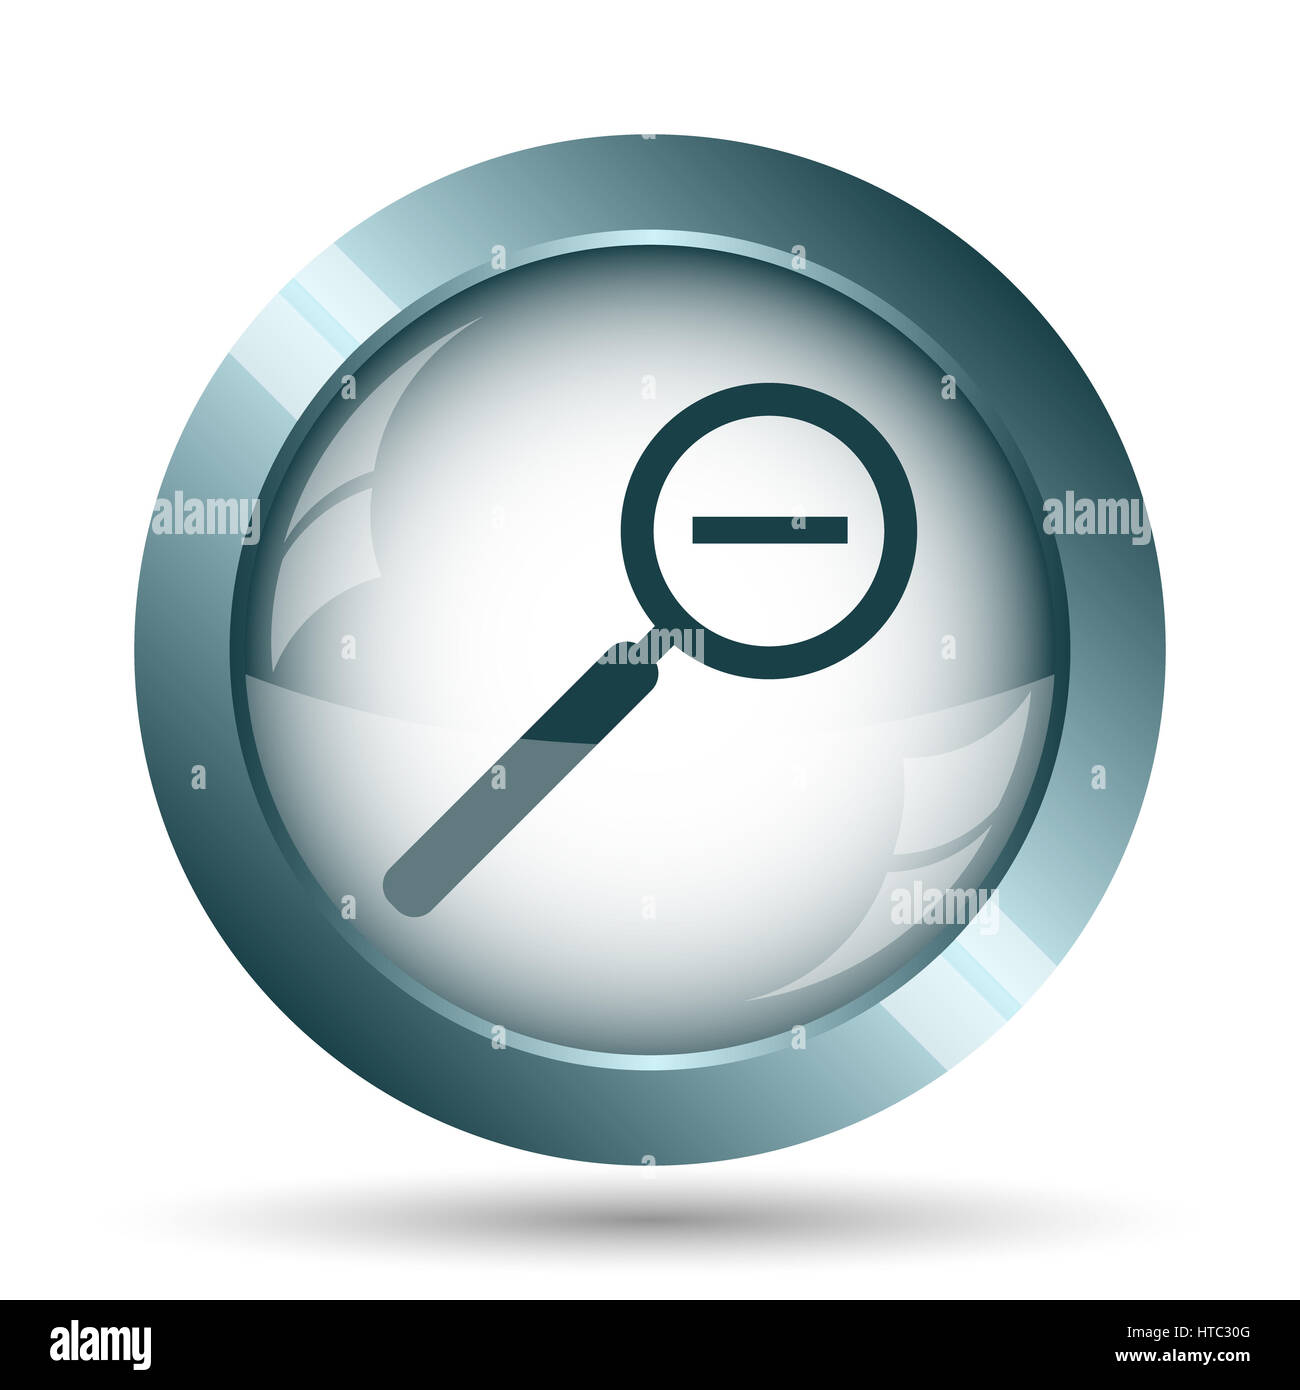 Stock photo zoom out icon internet button on white background